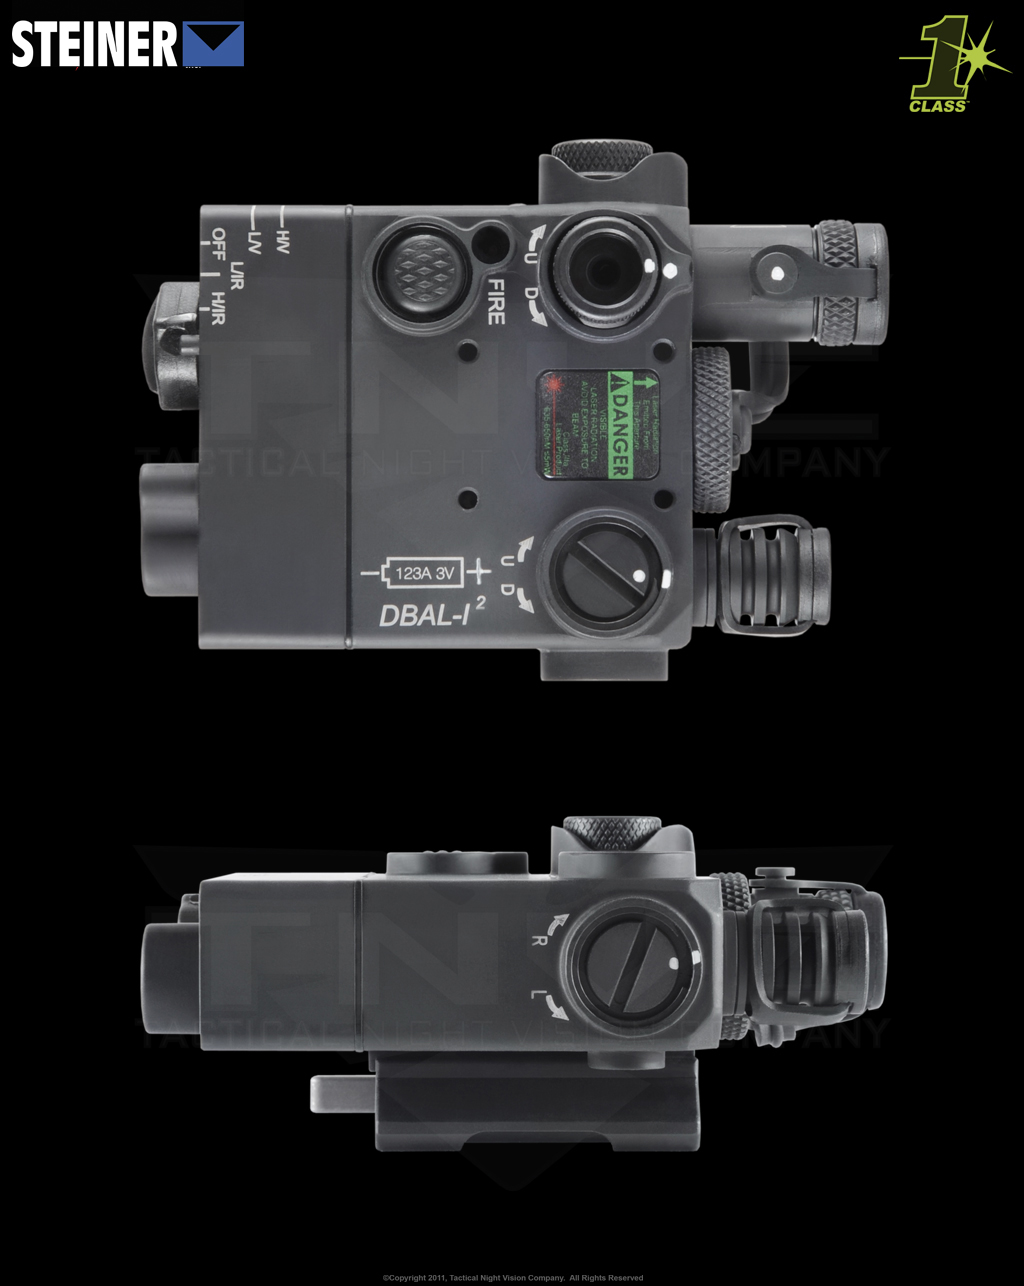 steiner dbal i class 1 ir laser tactical night vision company